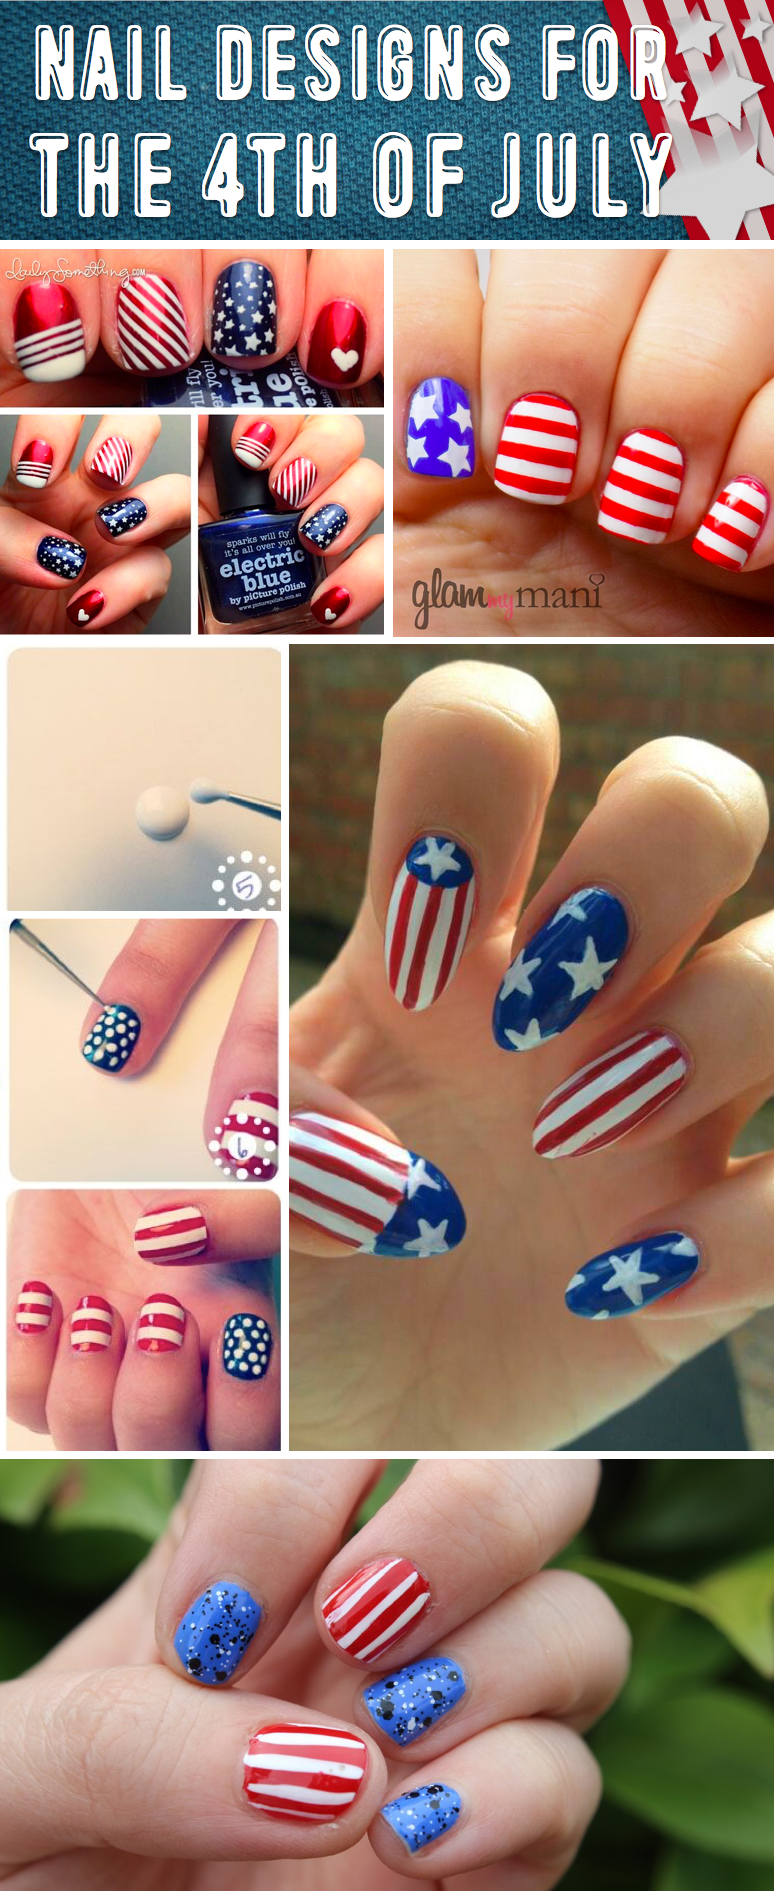 20 amazing patriotic nail designs for the 4th of july cute diy 20 amazing patriotic nail designs for the 4th prinsesfo Choice Image